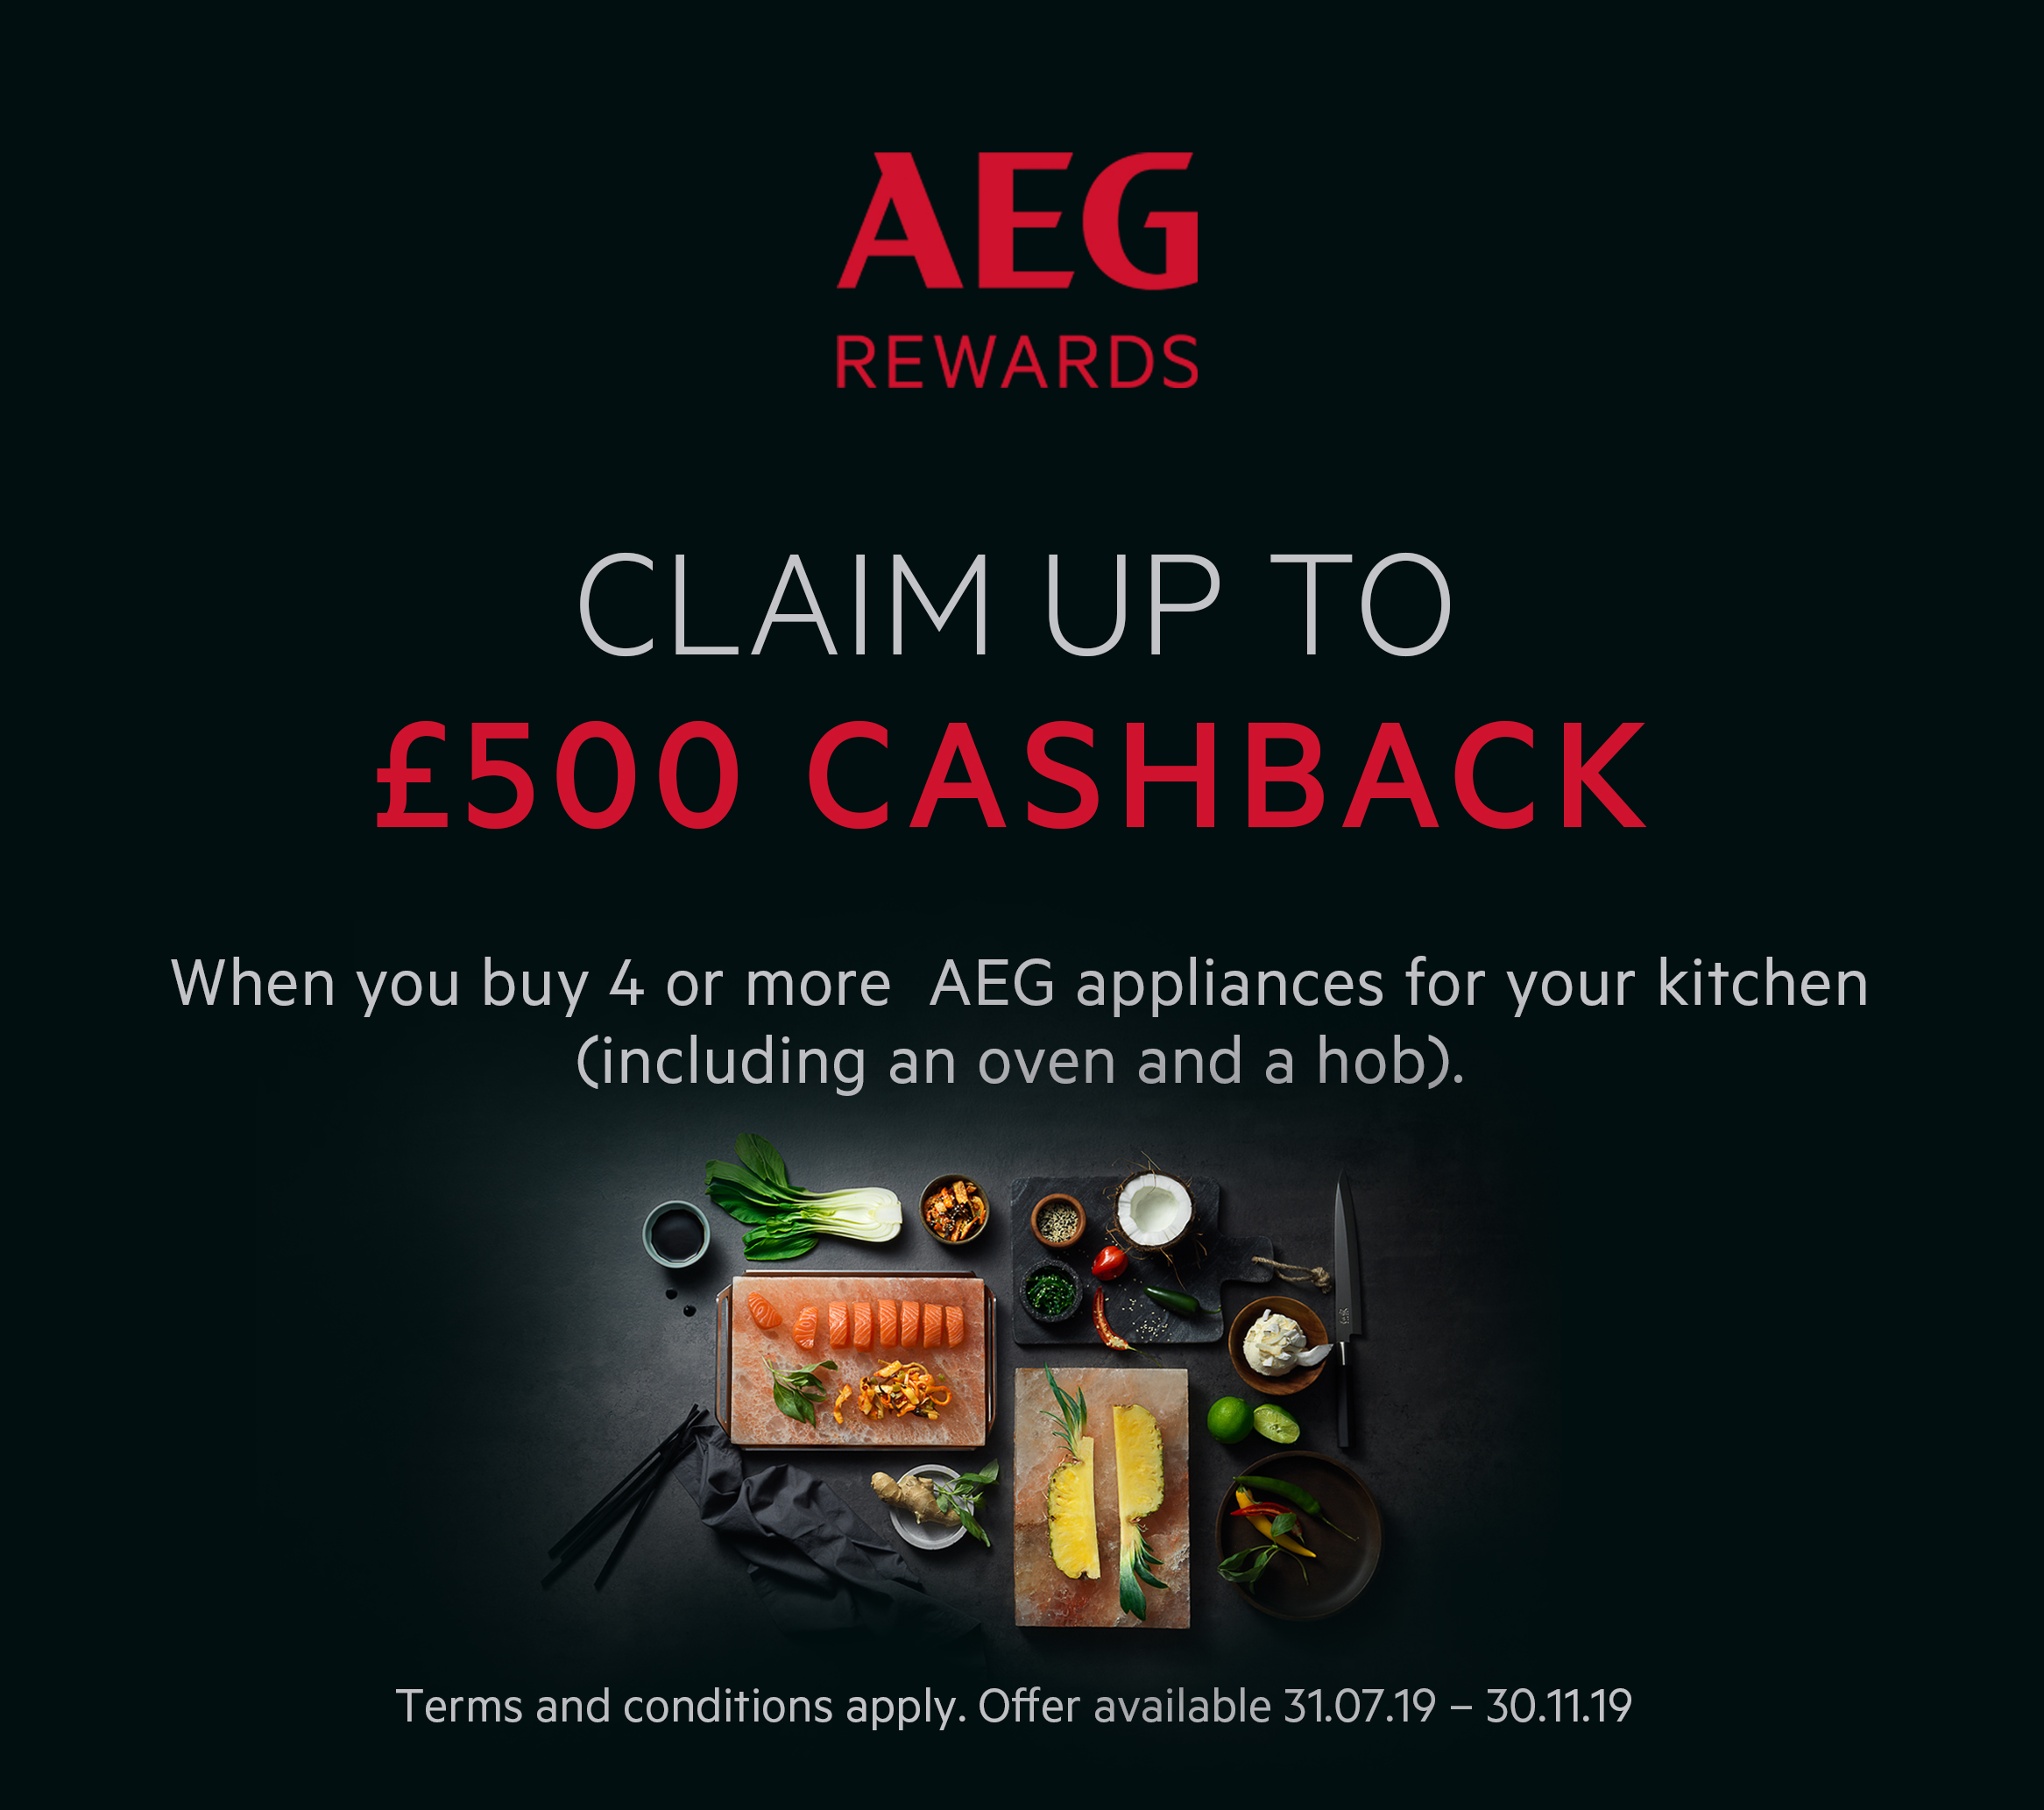 AEG Autumn Offer